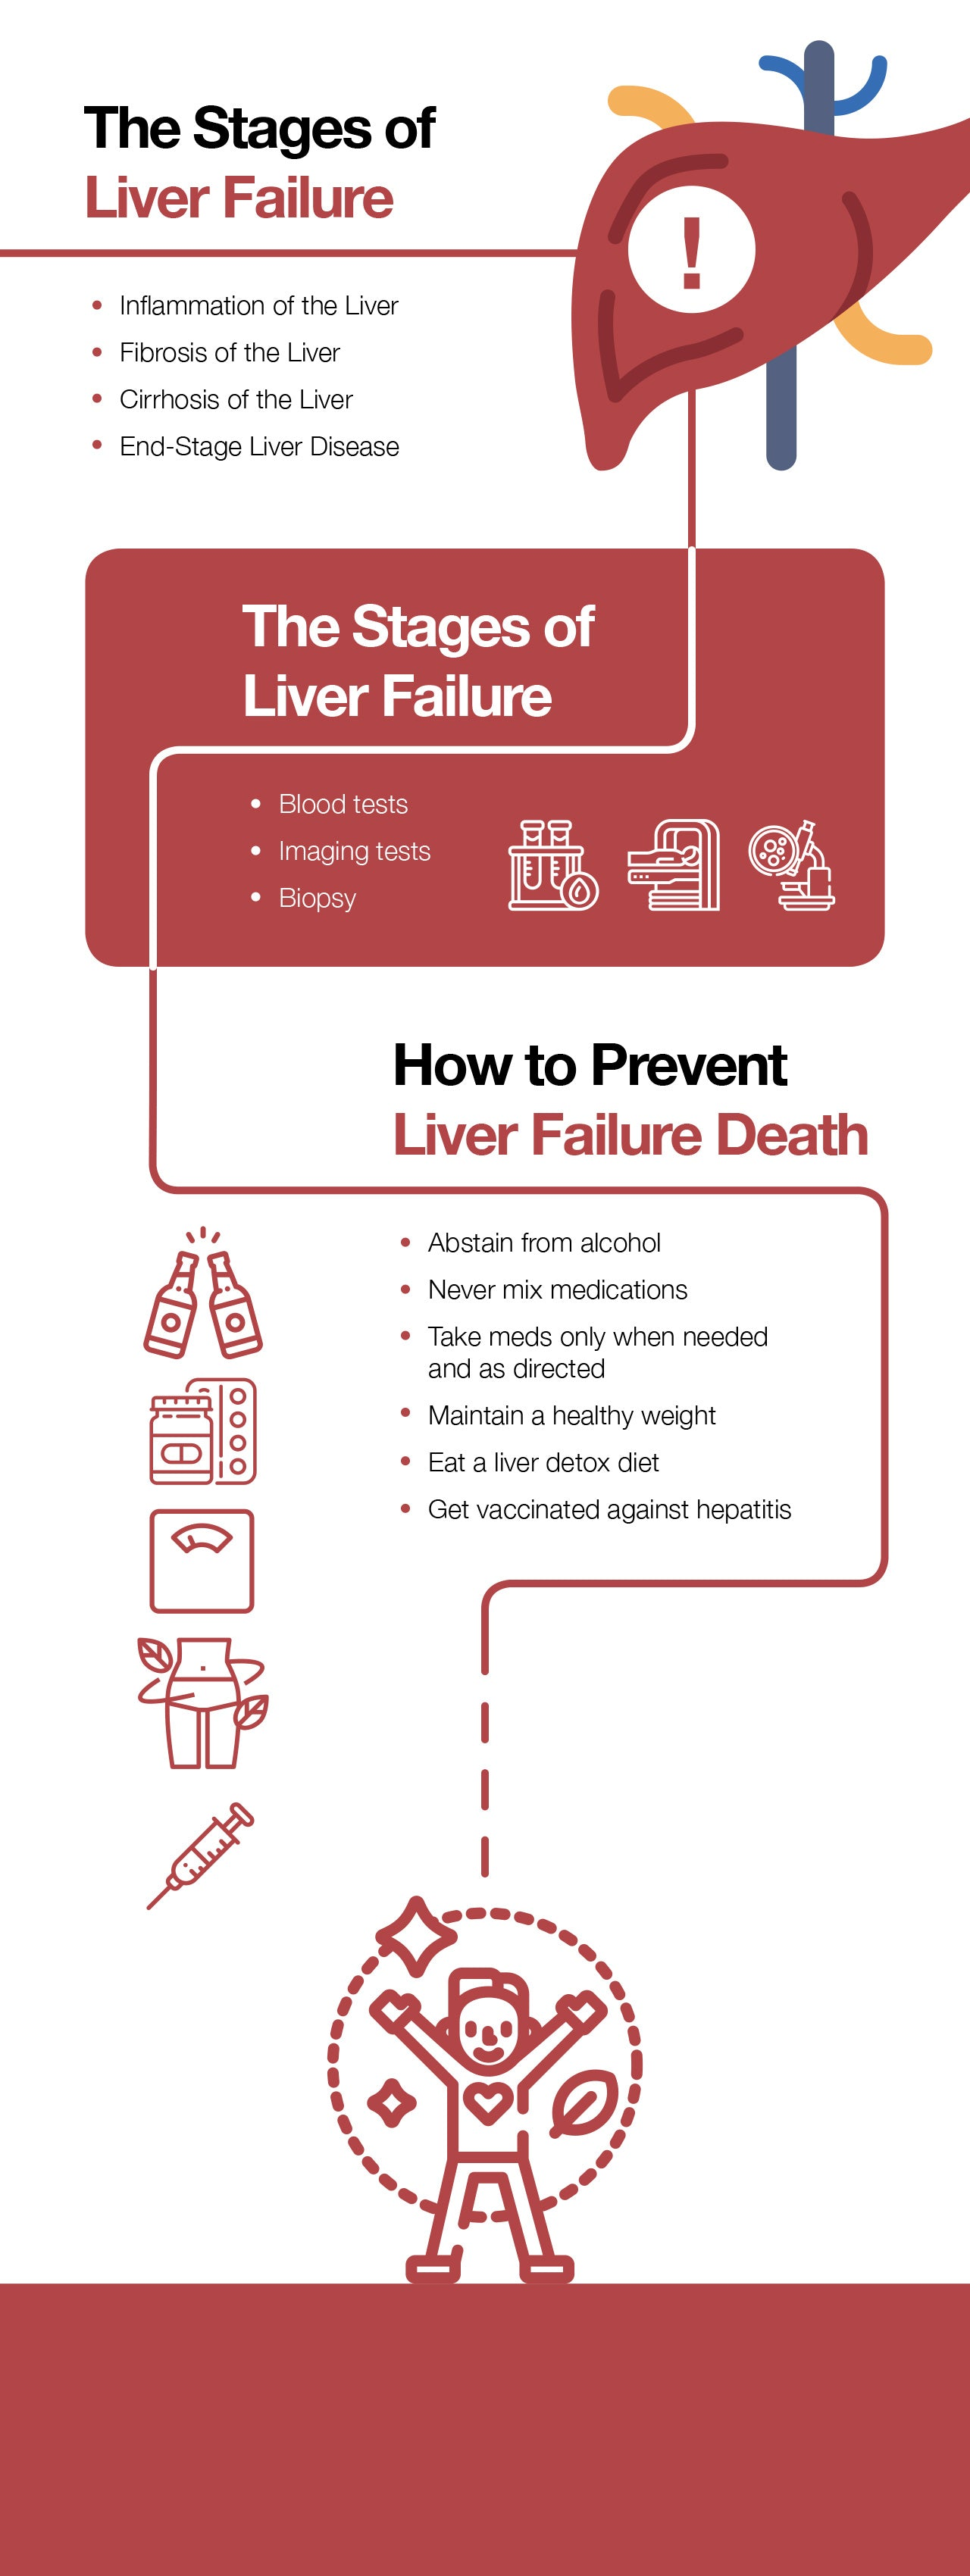 Liver failure death: causes, symptoms, and stages.